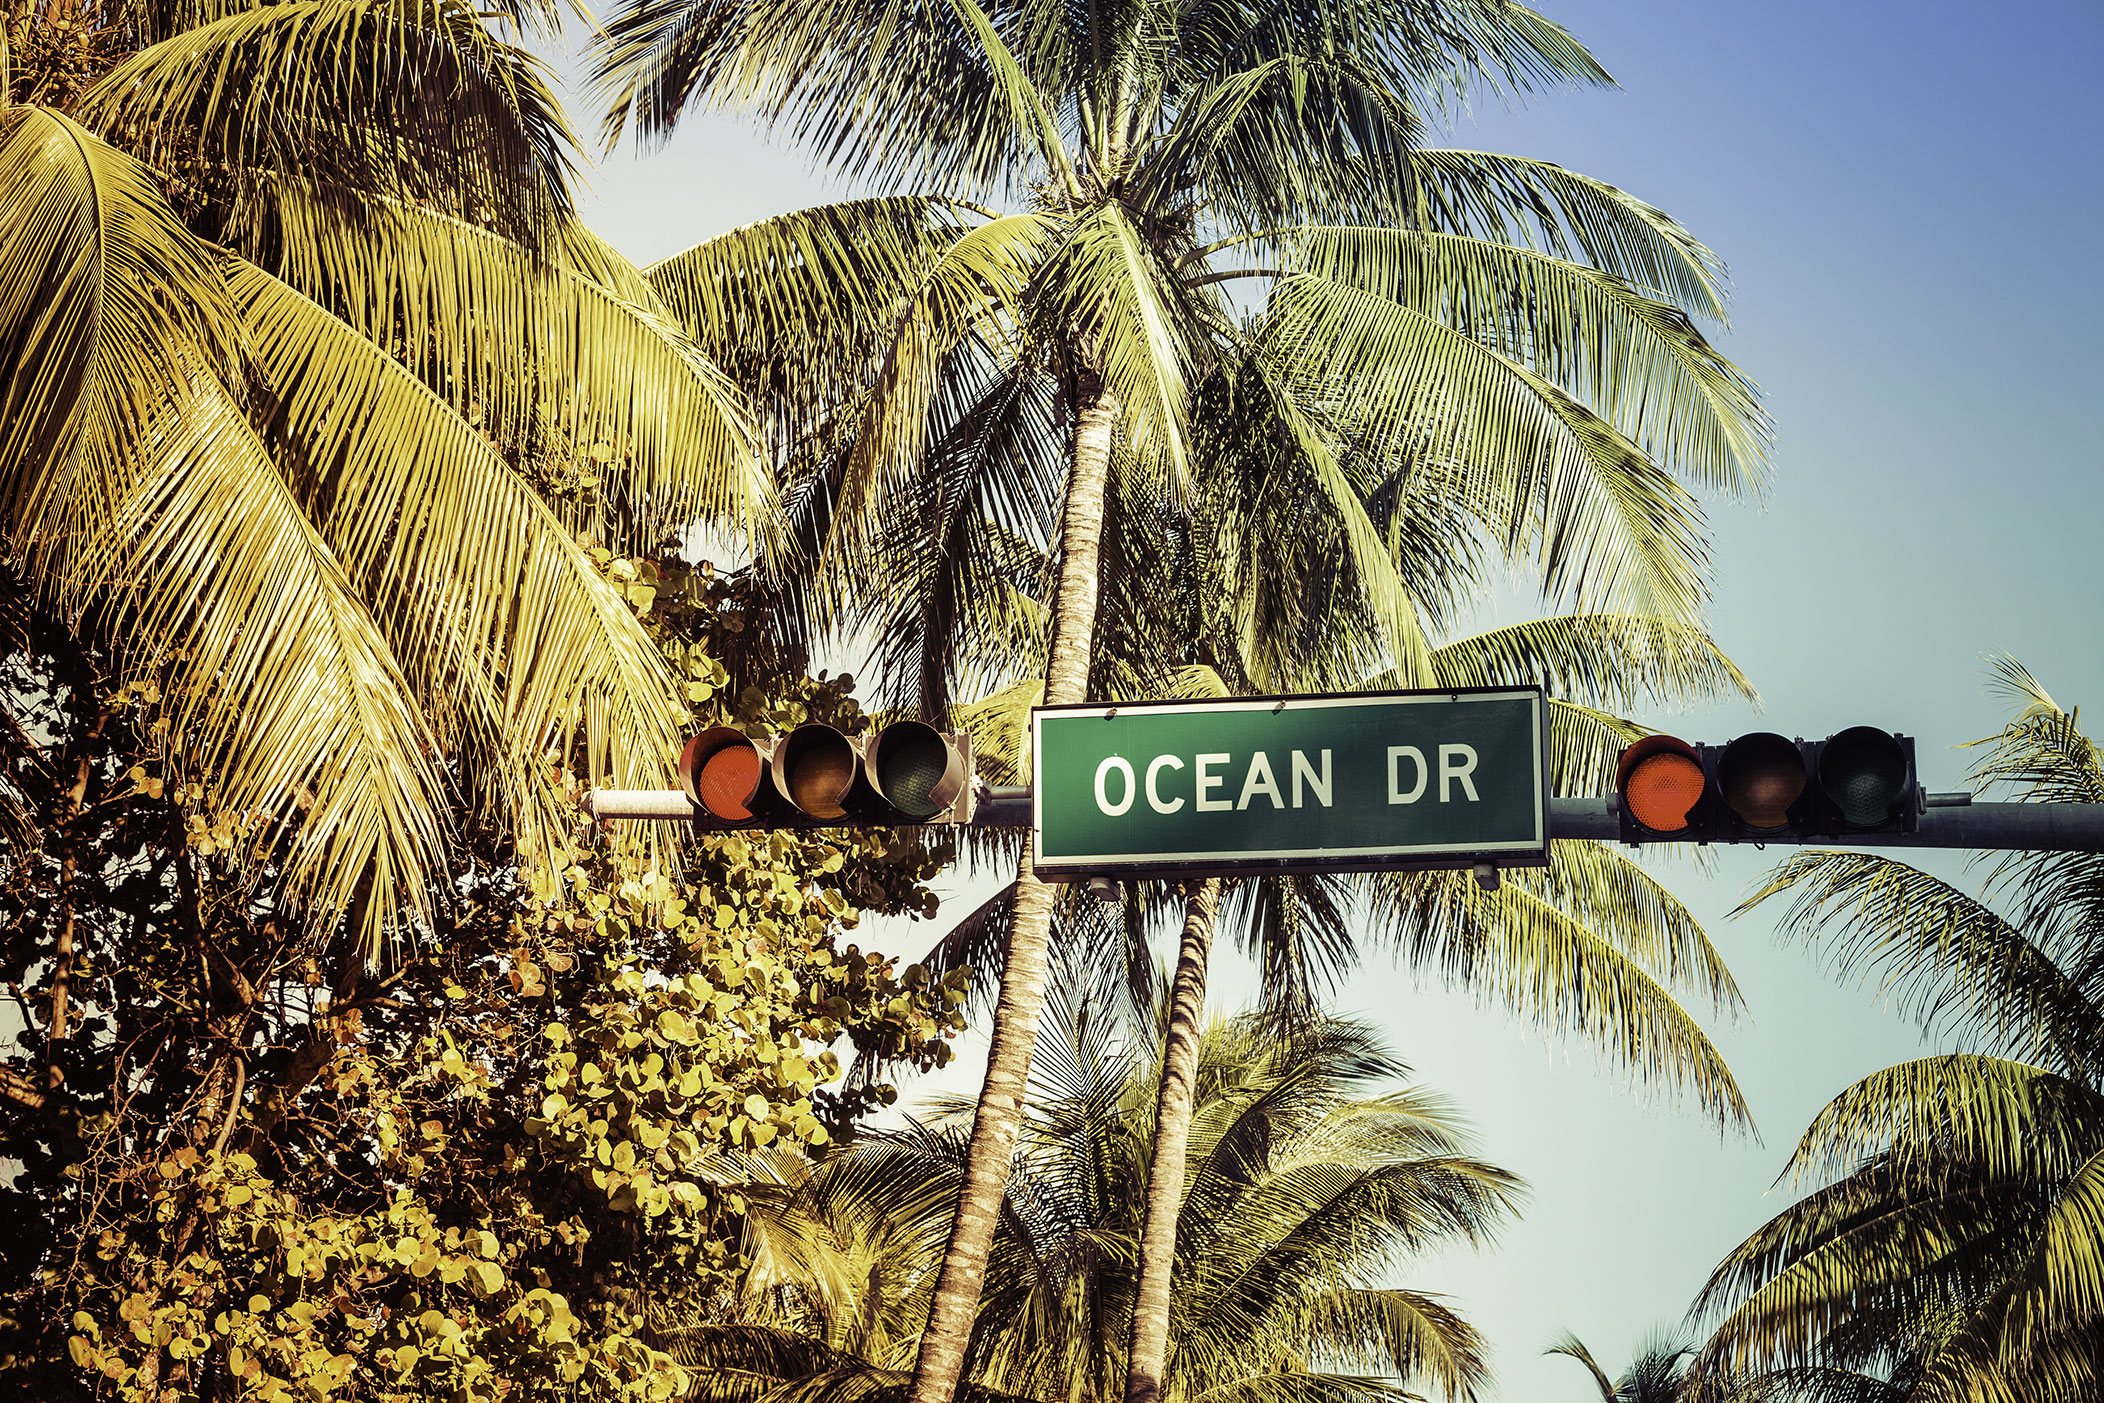 Ocean Drive in Miami Beach